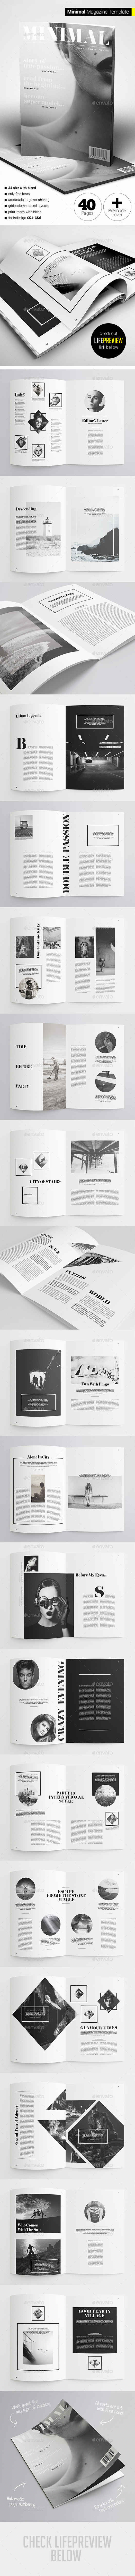 40 Pages Minimal Magazine - Magazines Print Templates